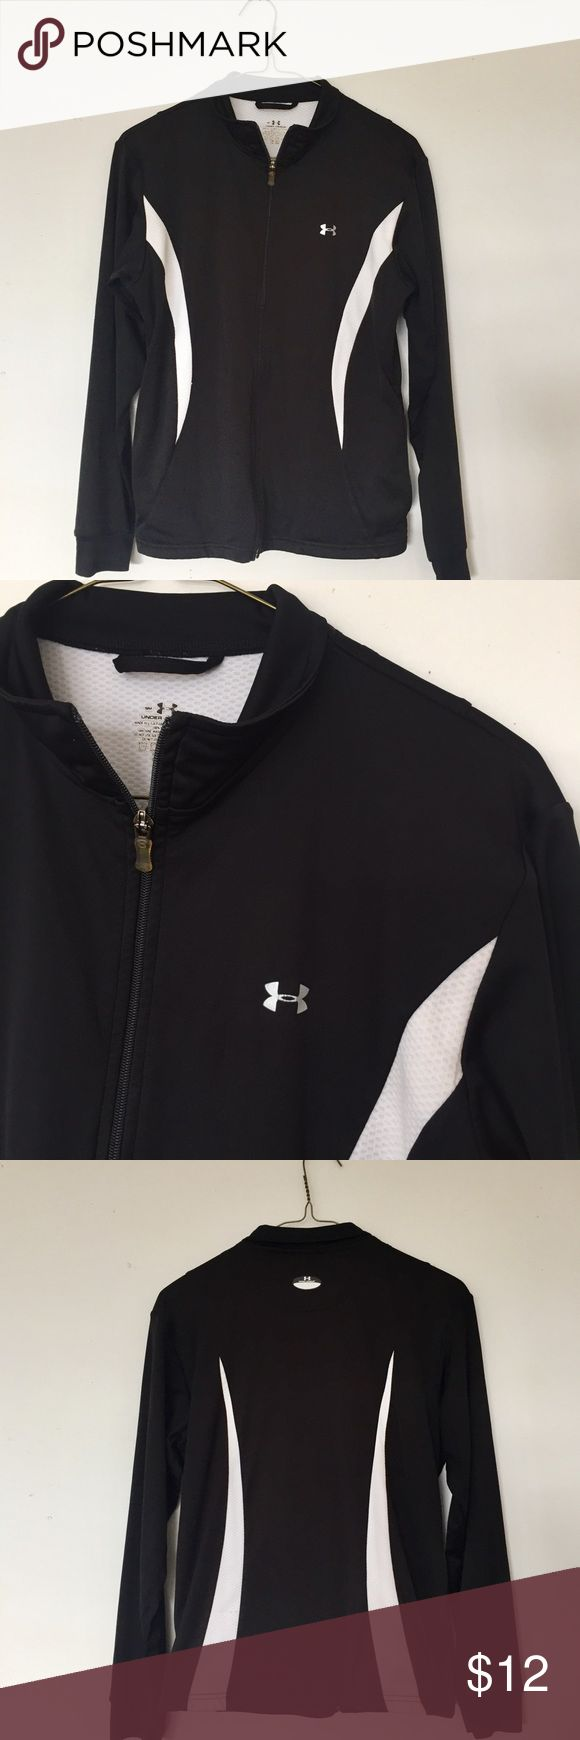 Under Armour Black and White Zip-Up Jacket This is a black and white zip-up Under Armour jacket. Size small. 100% polyester Under Armour Tops Sweatshirts & Hoodies